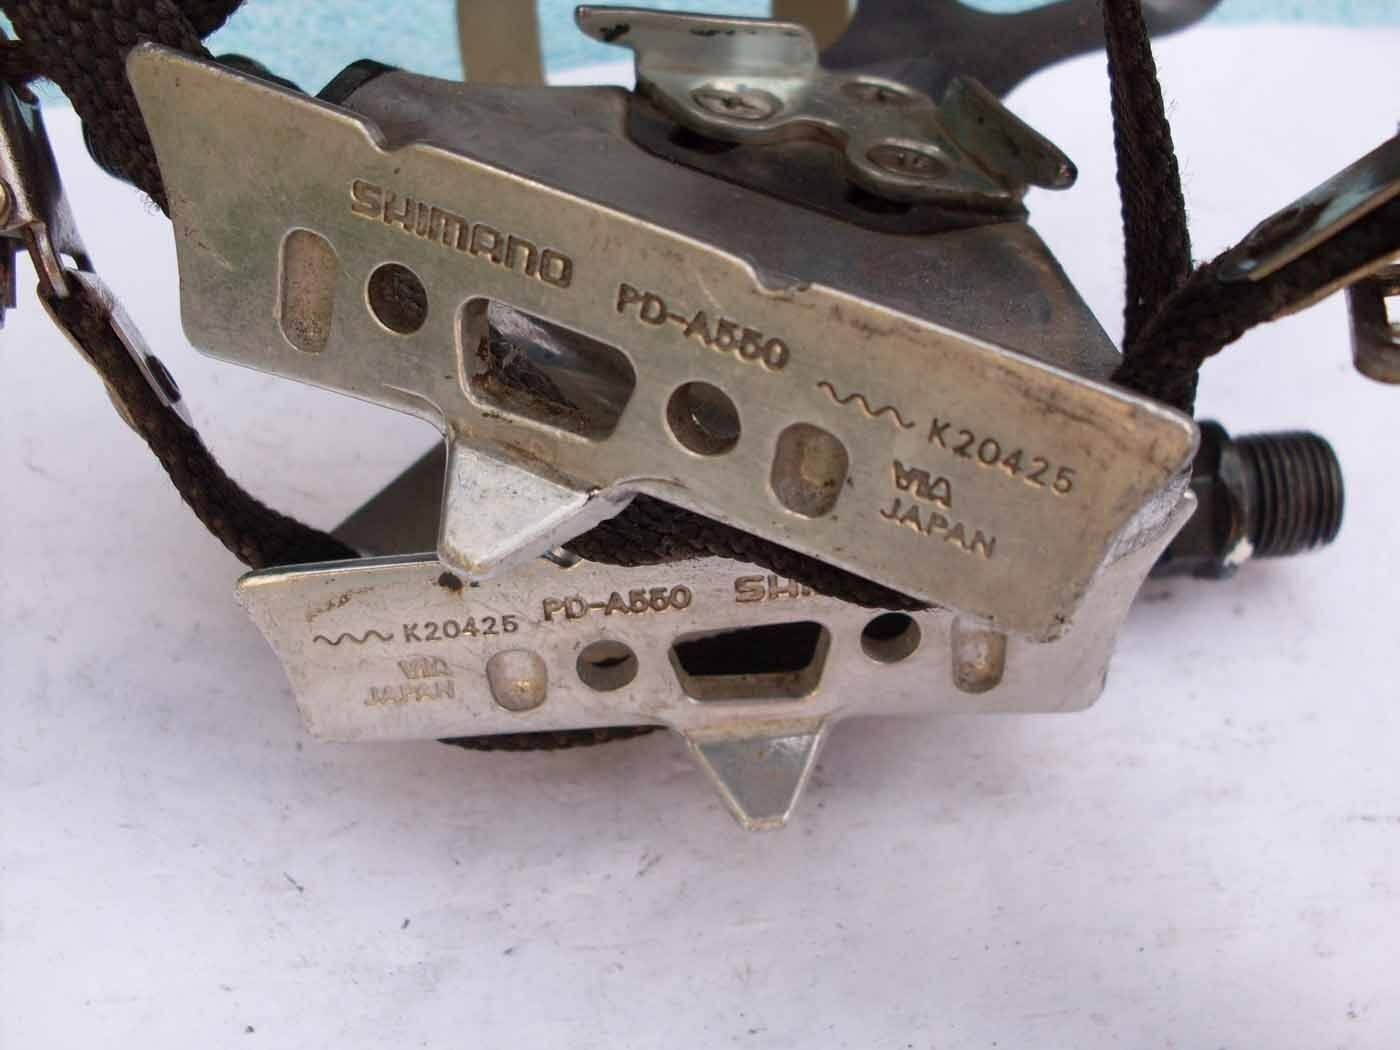 Used road vintage bicycle pedals christophe Shimano 105 PD1055 straps and clips